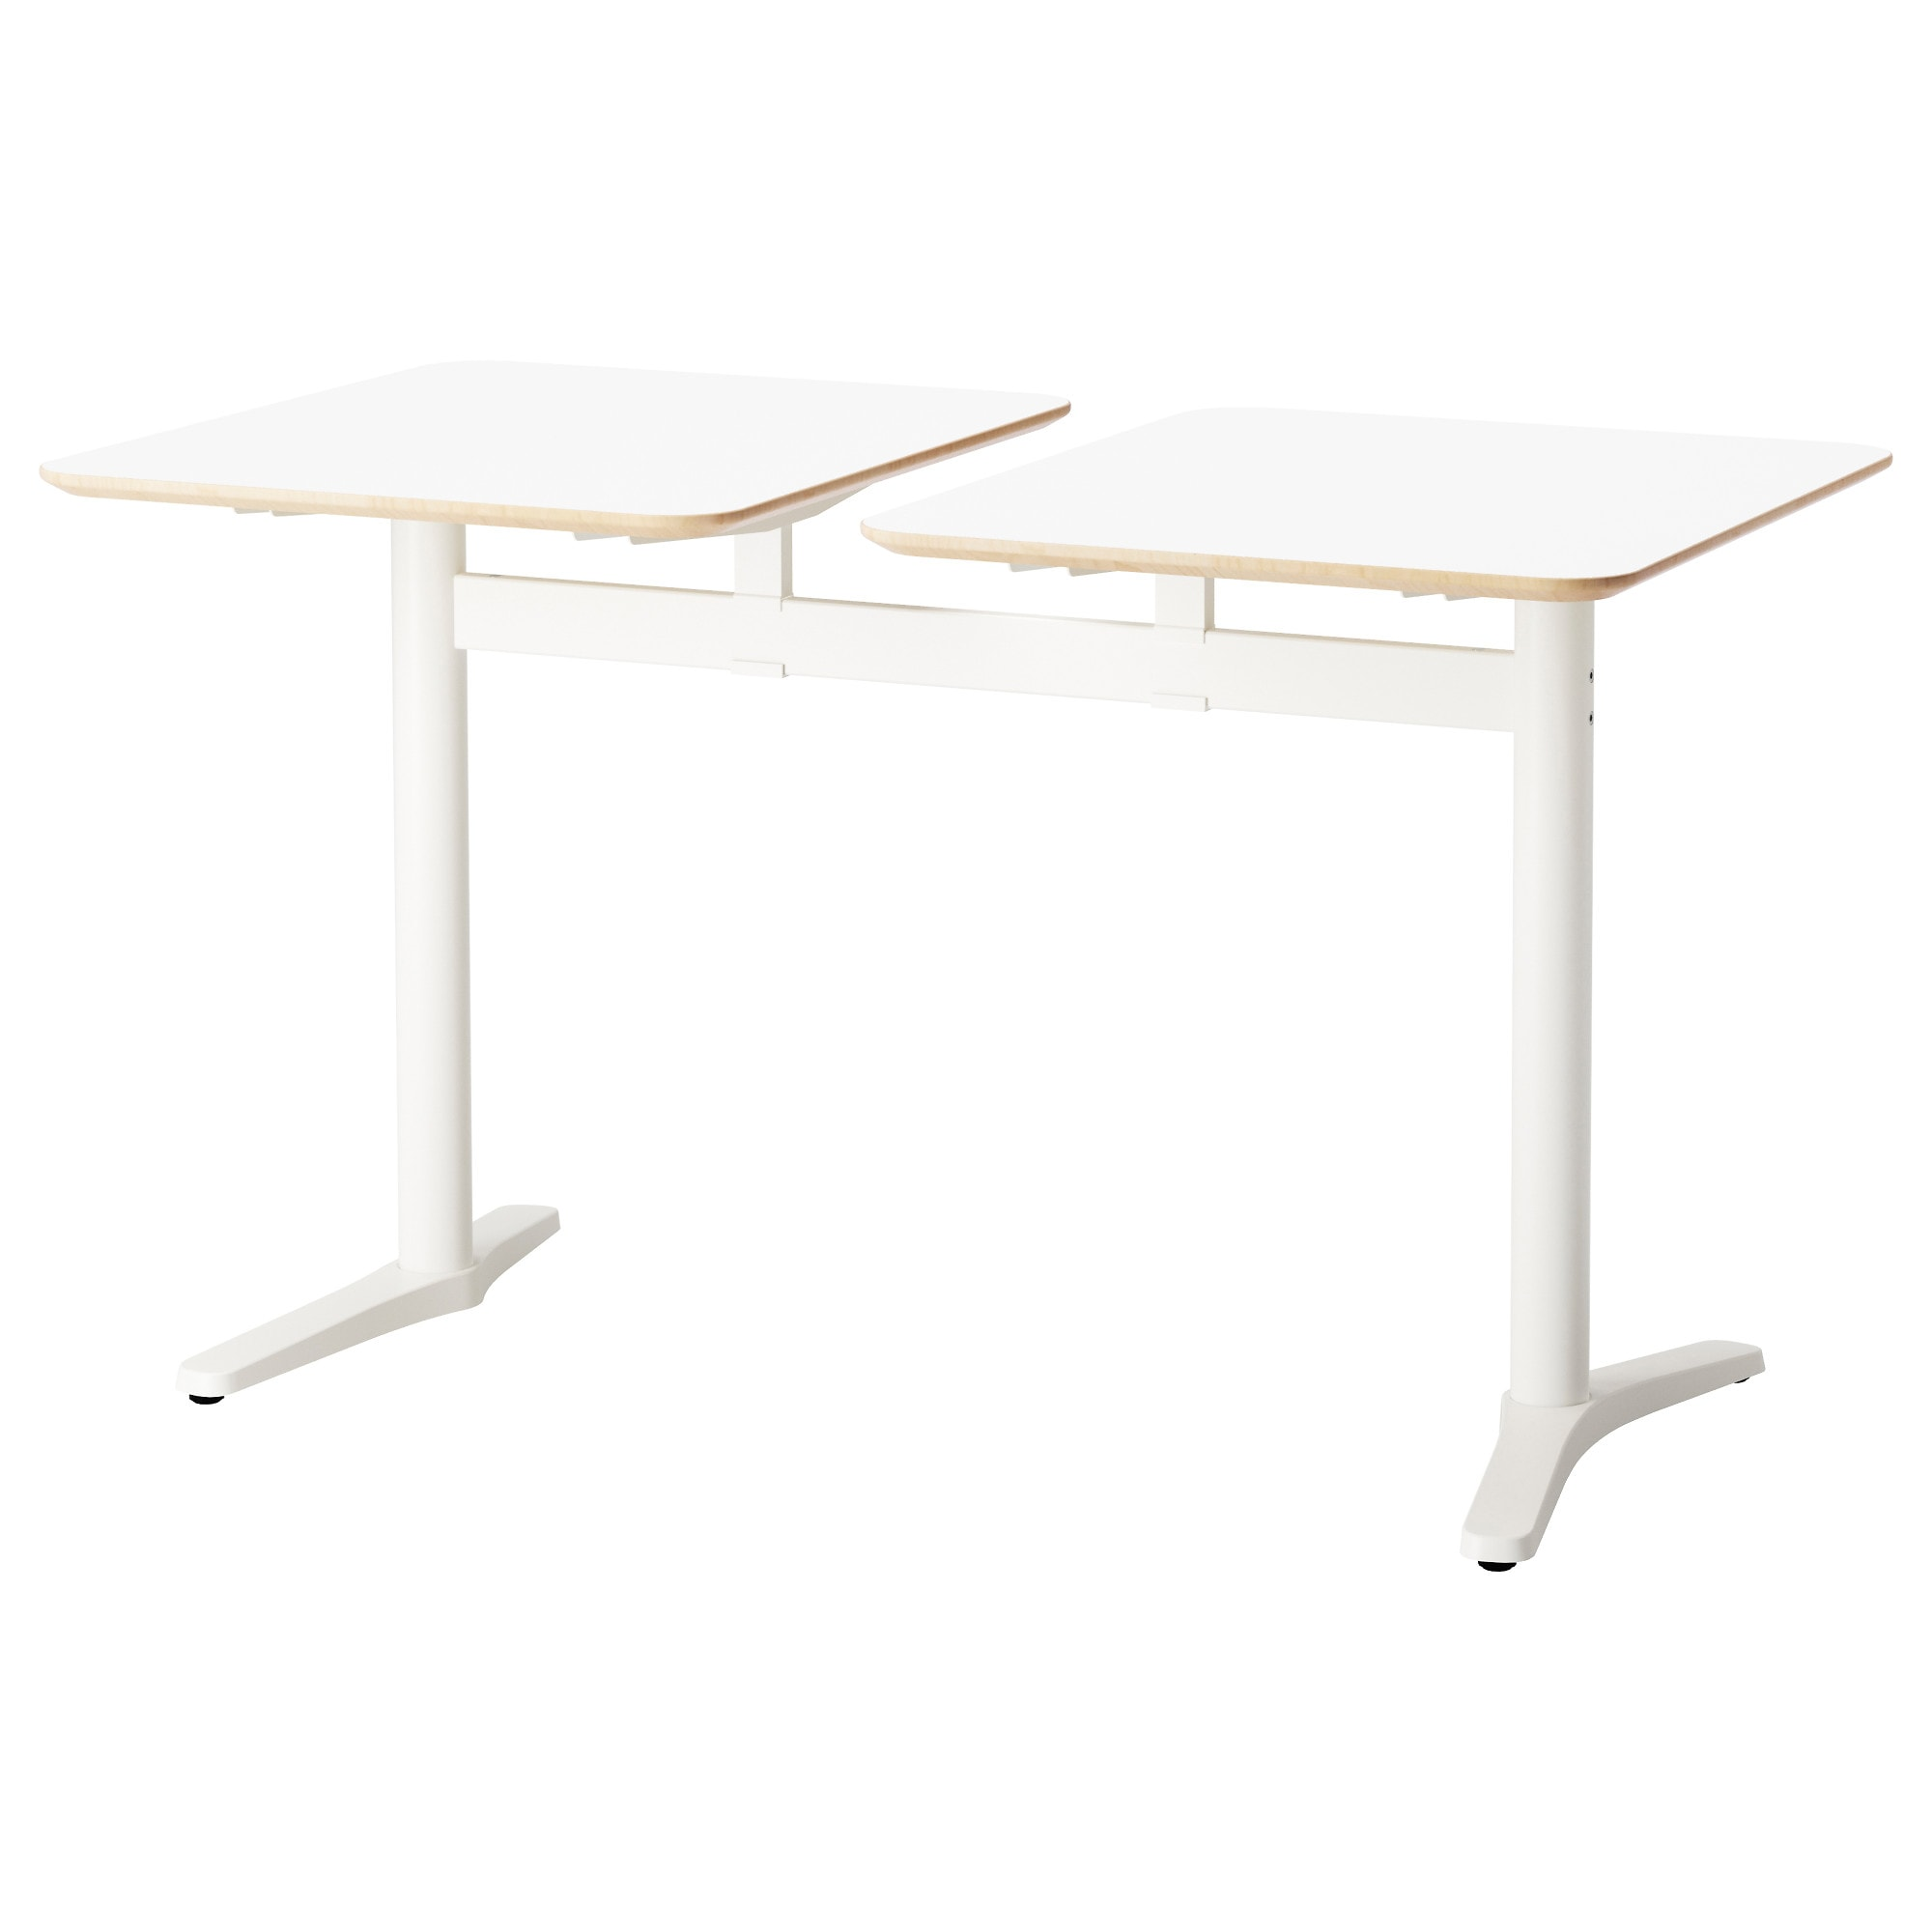 70cm modern cafe chairs and tables view modern cafe chairs and tables - Billsta Table With 2 Tops White White Length 51 1 8